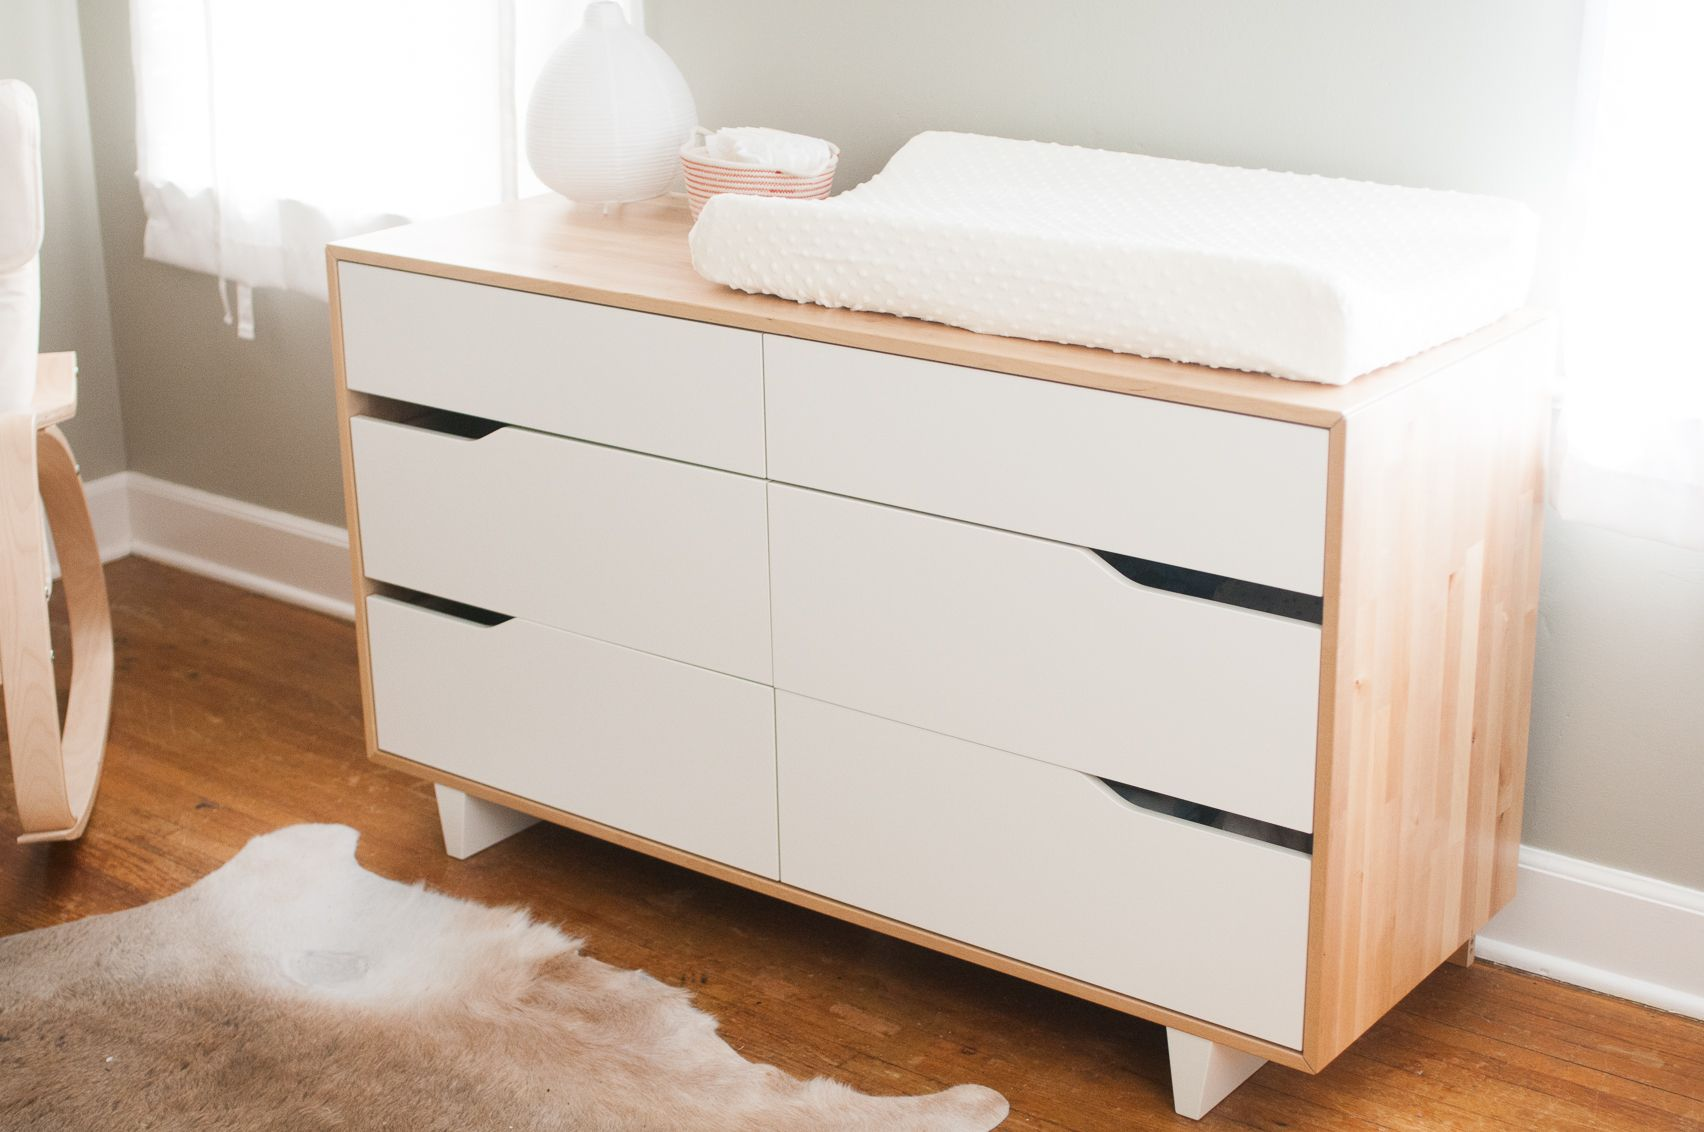 Ikea Mandal Dresser Google Search Baby Room Nursery Side